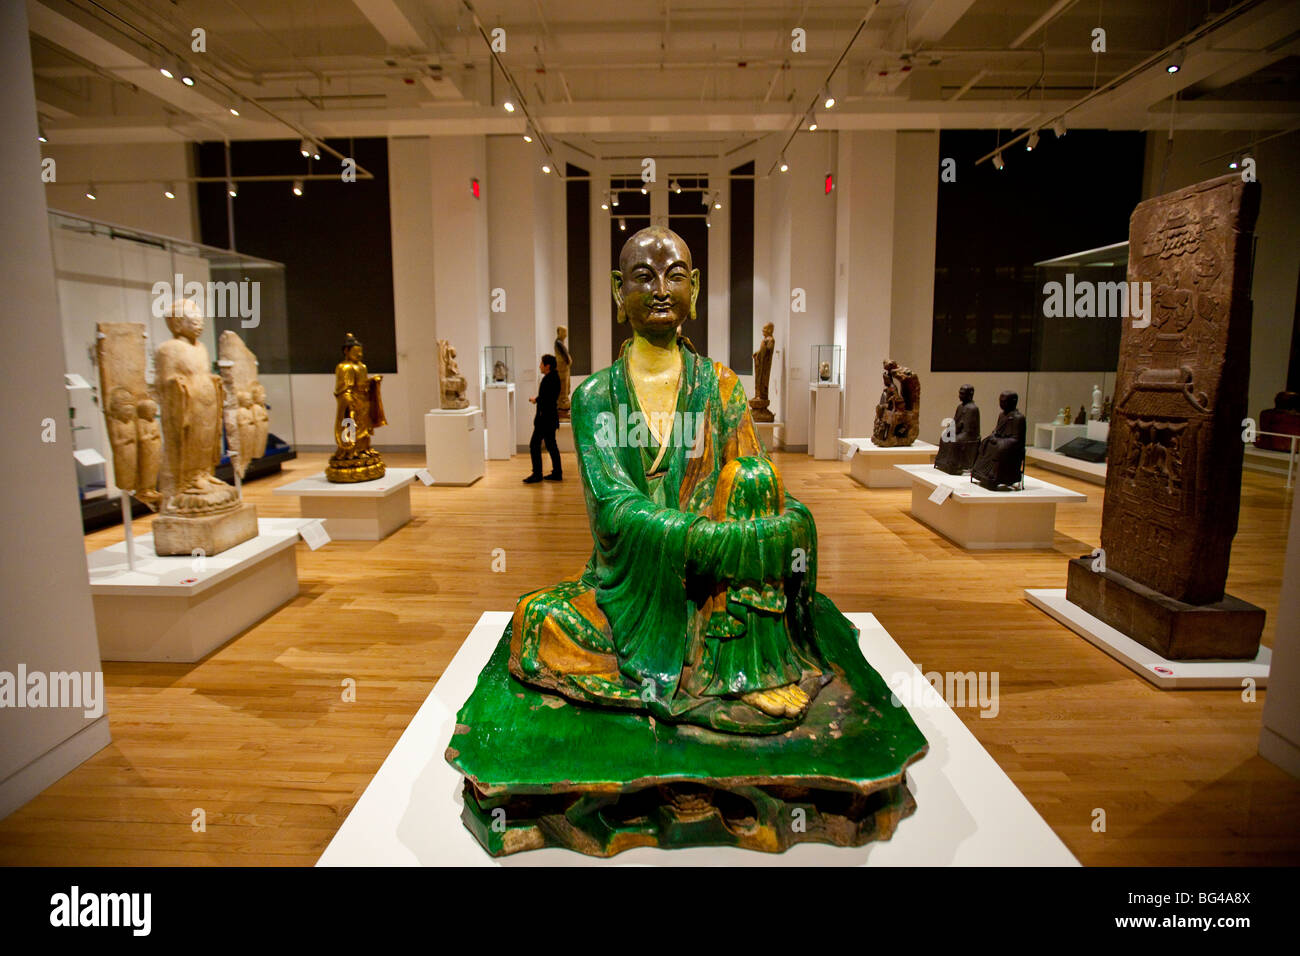 East Asian Art Collection at the Royal Ontario Museum or ROM in Toronto Canada - Stock Image